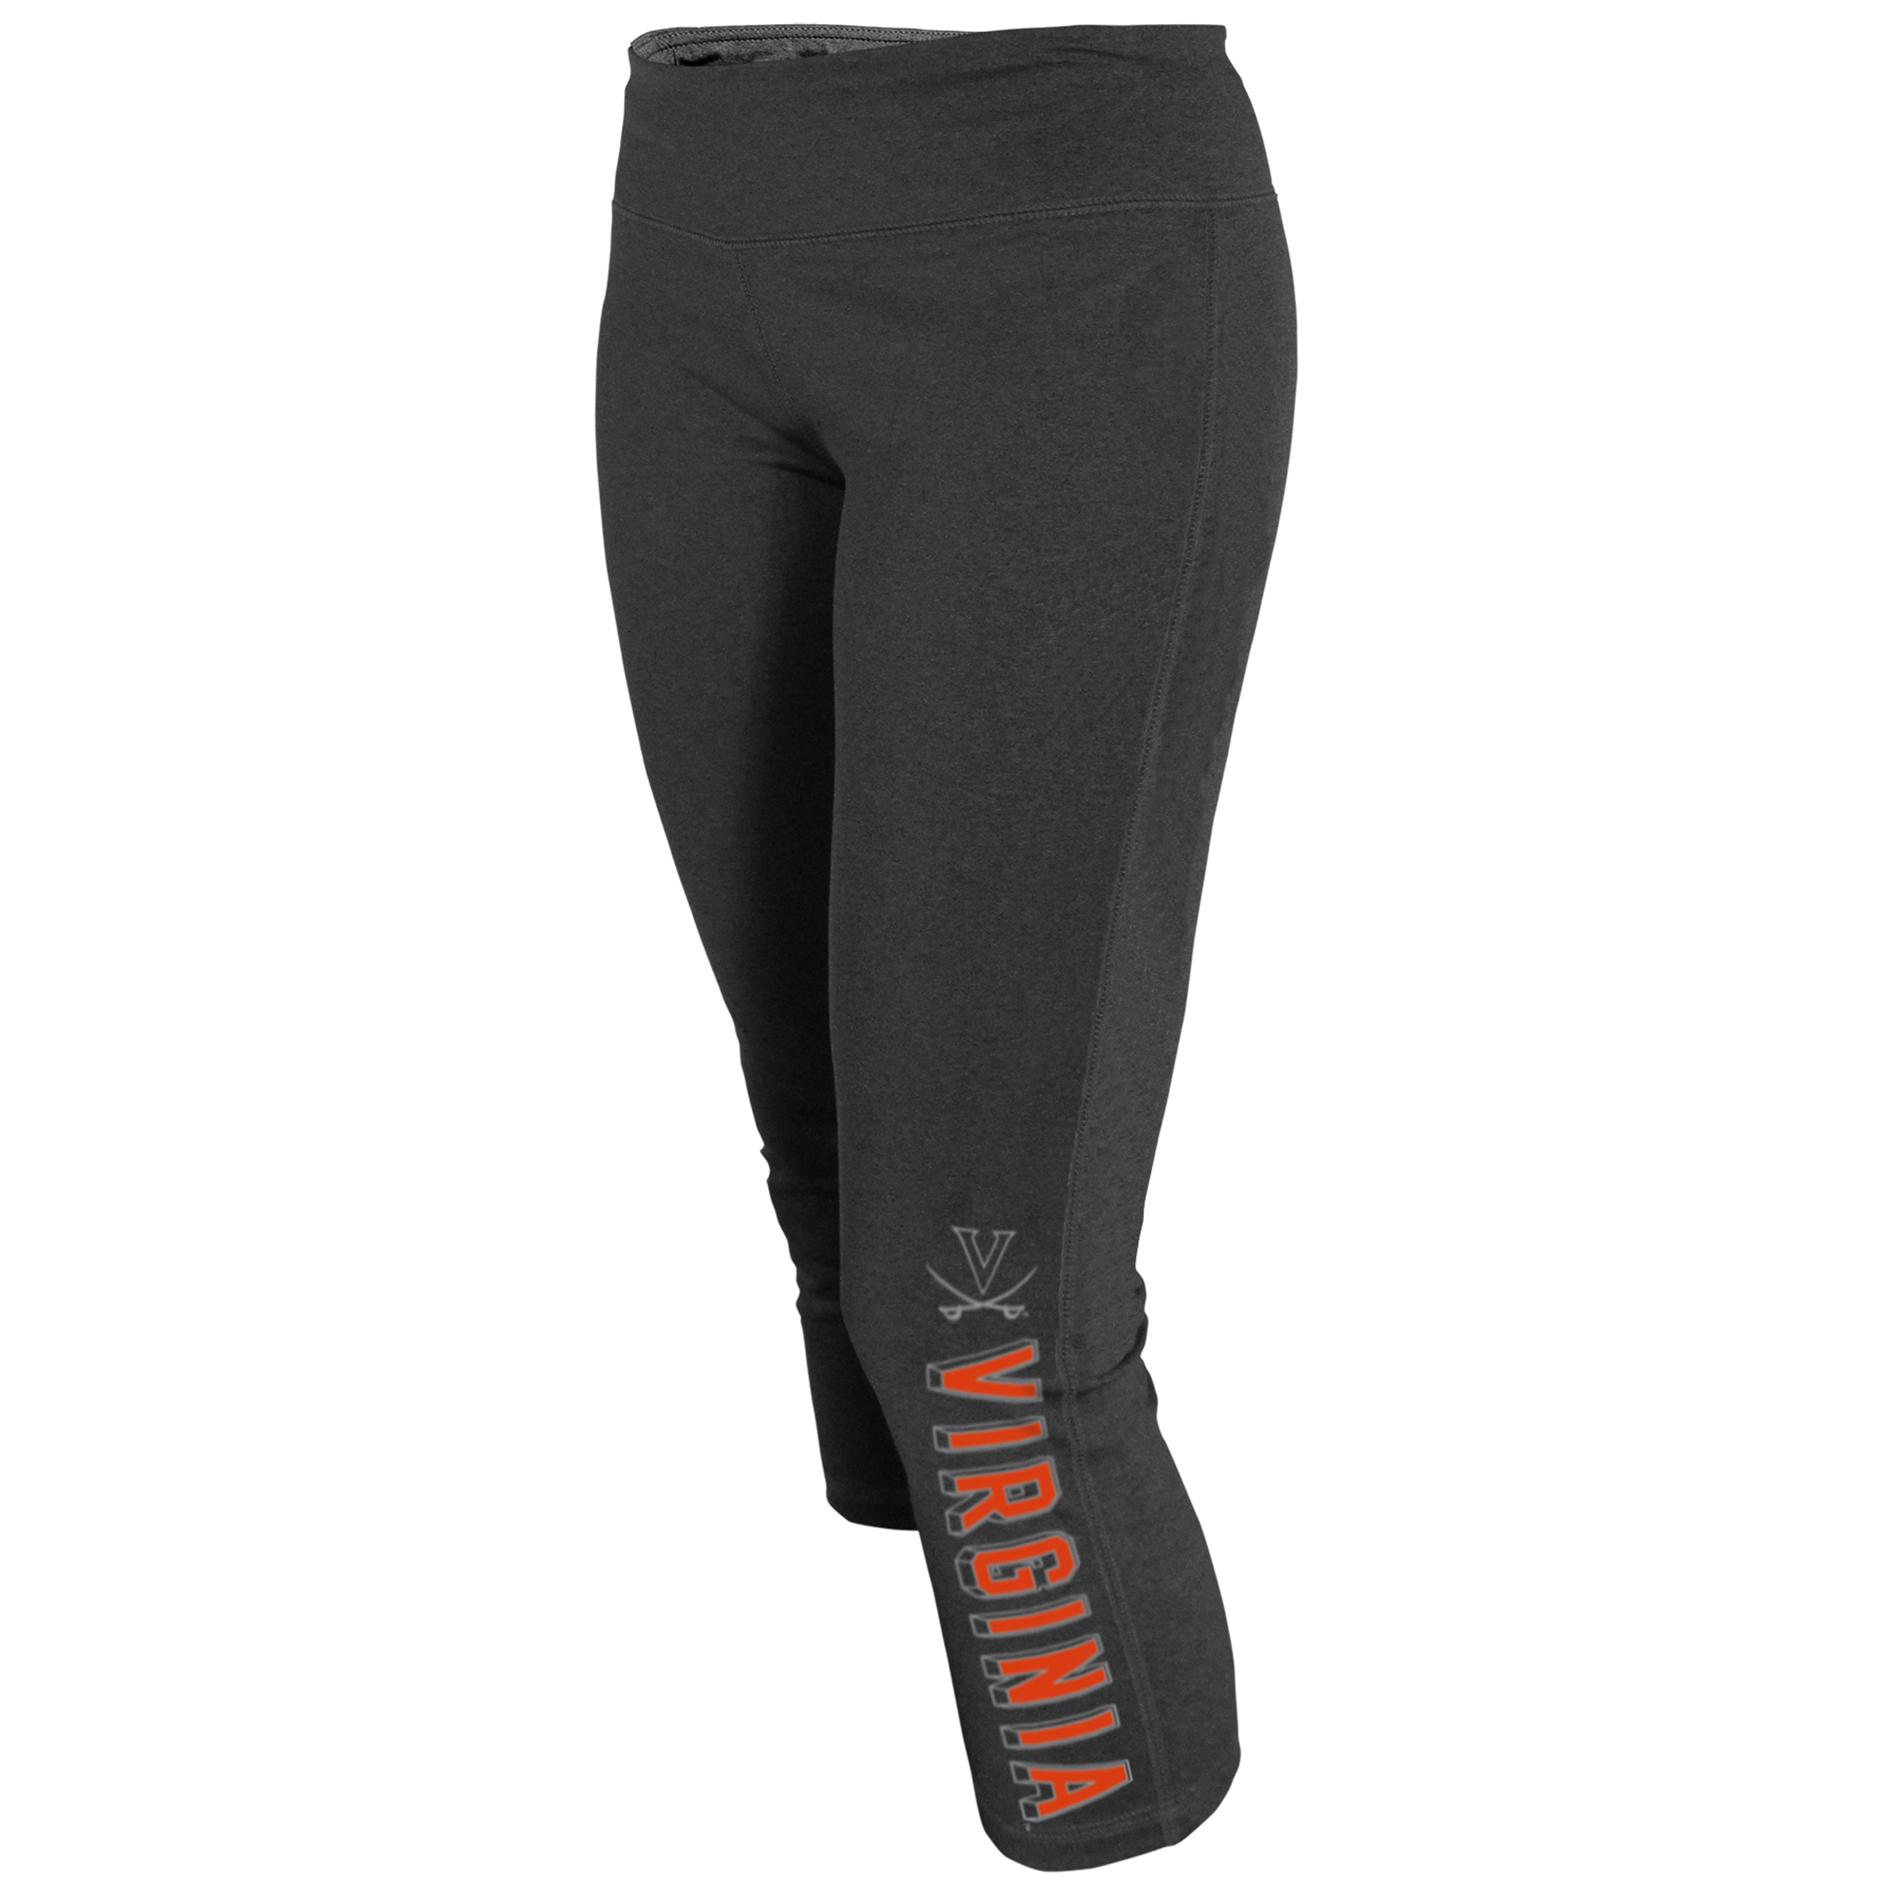 NCAA Women's Capri Yoga Pants - Virginia Cavaliers